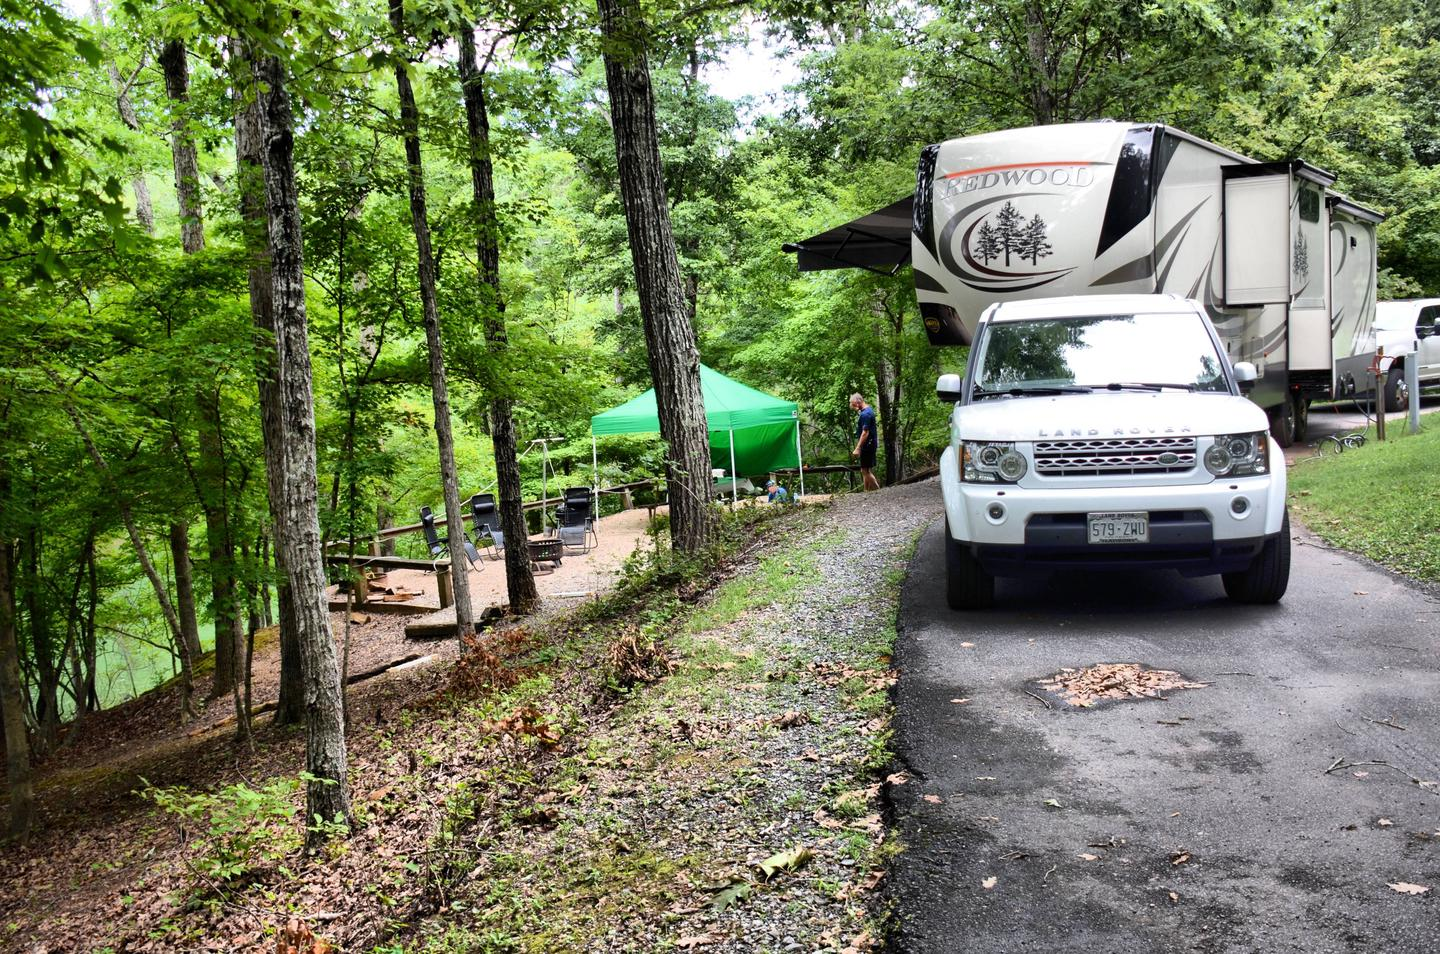 Awning-side clearance.McKinney Campground, campsite 80.